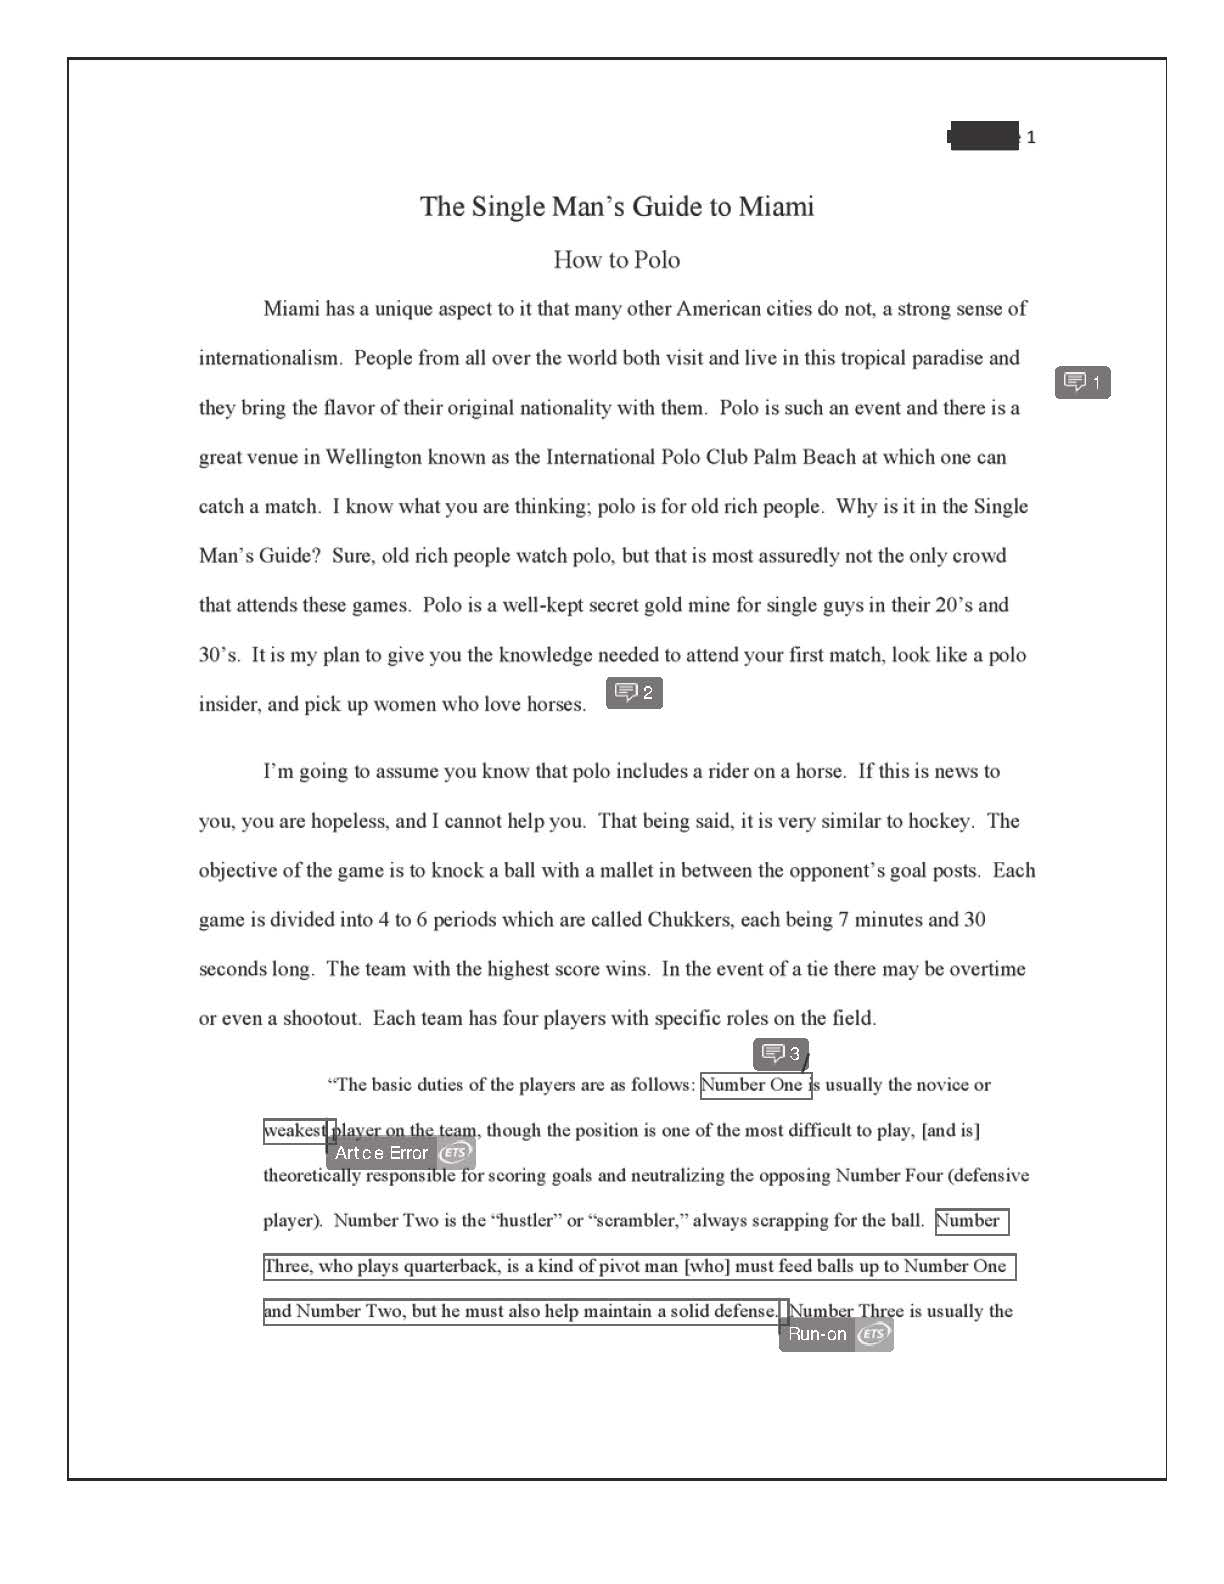 005 Informative Essay Topics Essays Sample Funny Argumentative For Middle School Final How To Polo Redacted P College Students Hilarious Good Remarkable Expository 5th Grade Paper Prompts Full